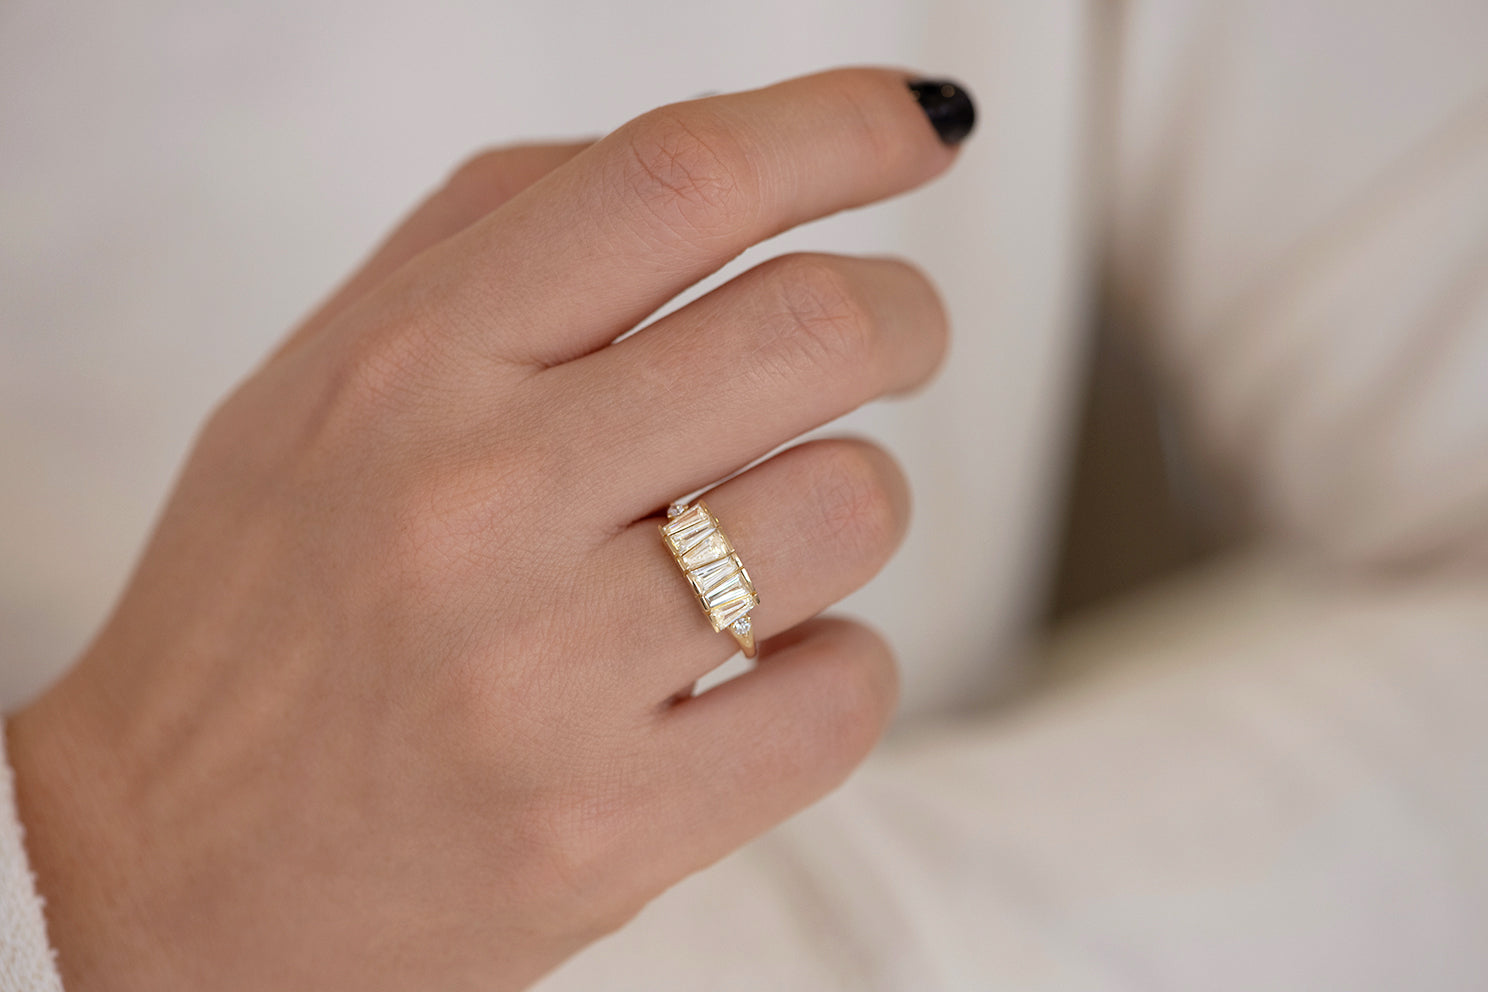 OOAK Tapered Baguette Diamond Lineup Ring on Hand Front View